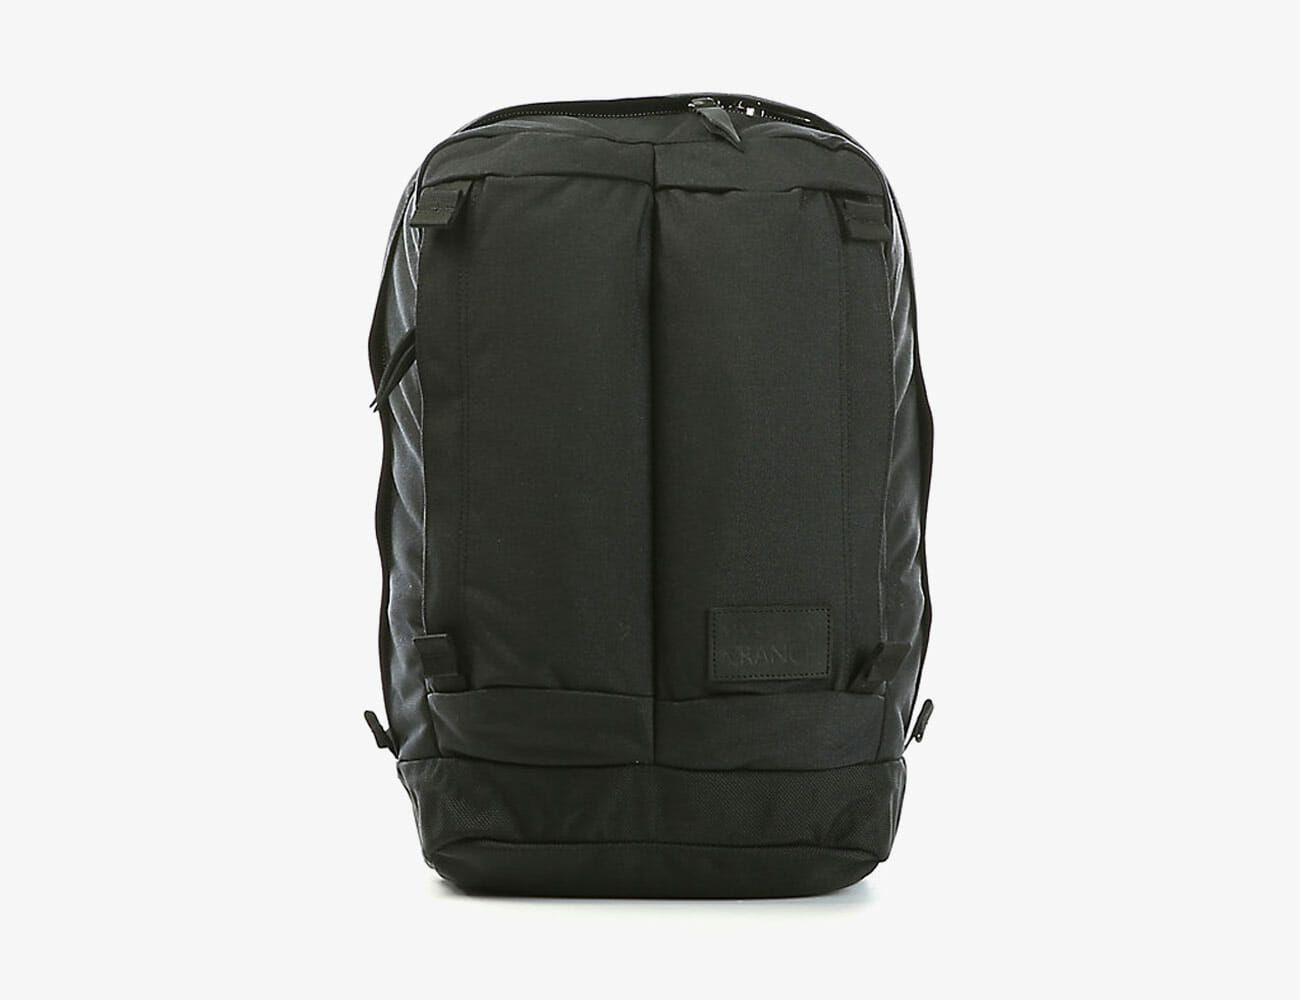 20 Best bags images | Bags, Backpacks, Laptop backpack